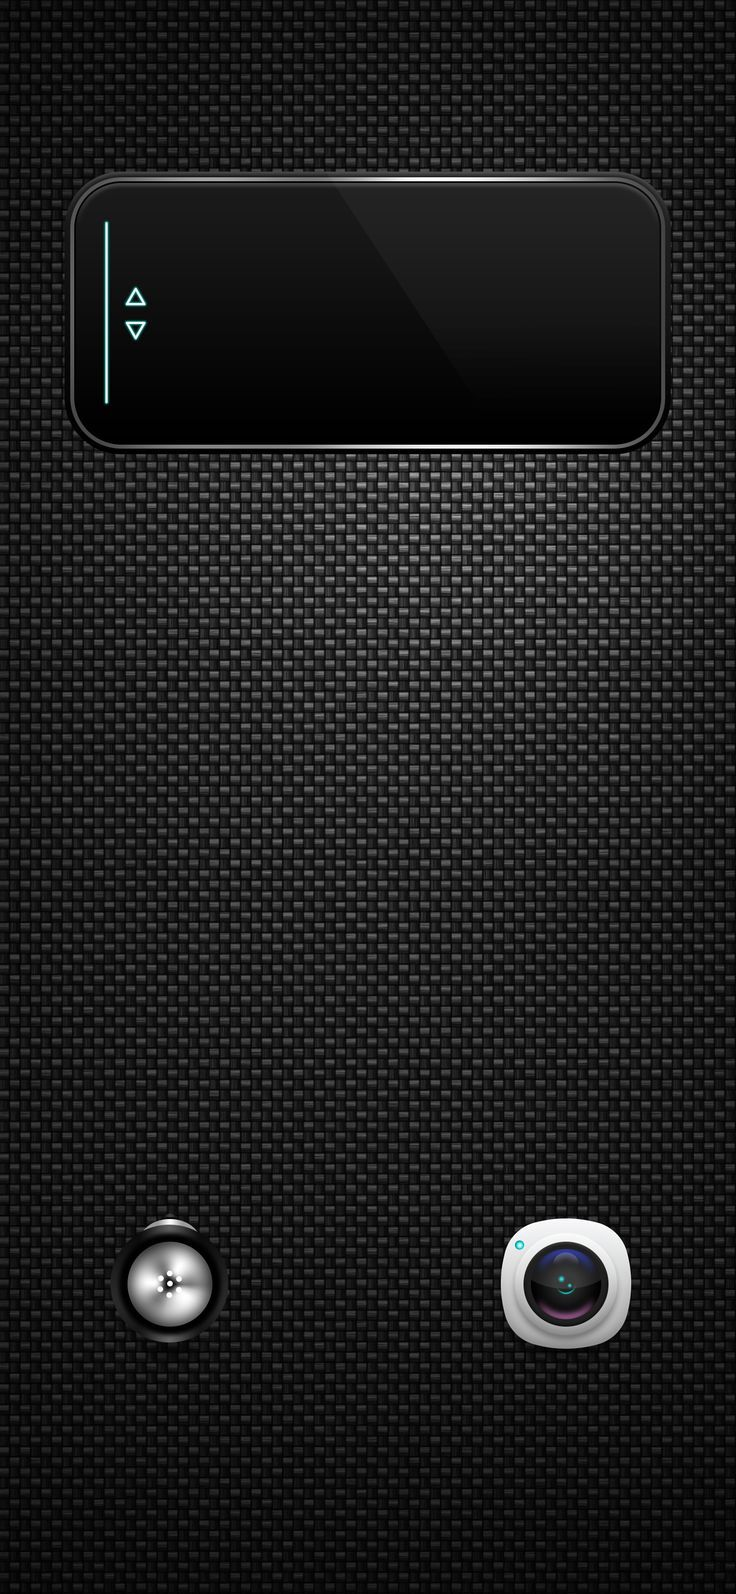 Free Iphone X Wallpaper Notitle 717479784363314487 Iphone